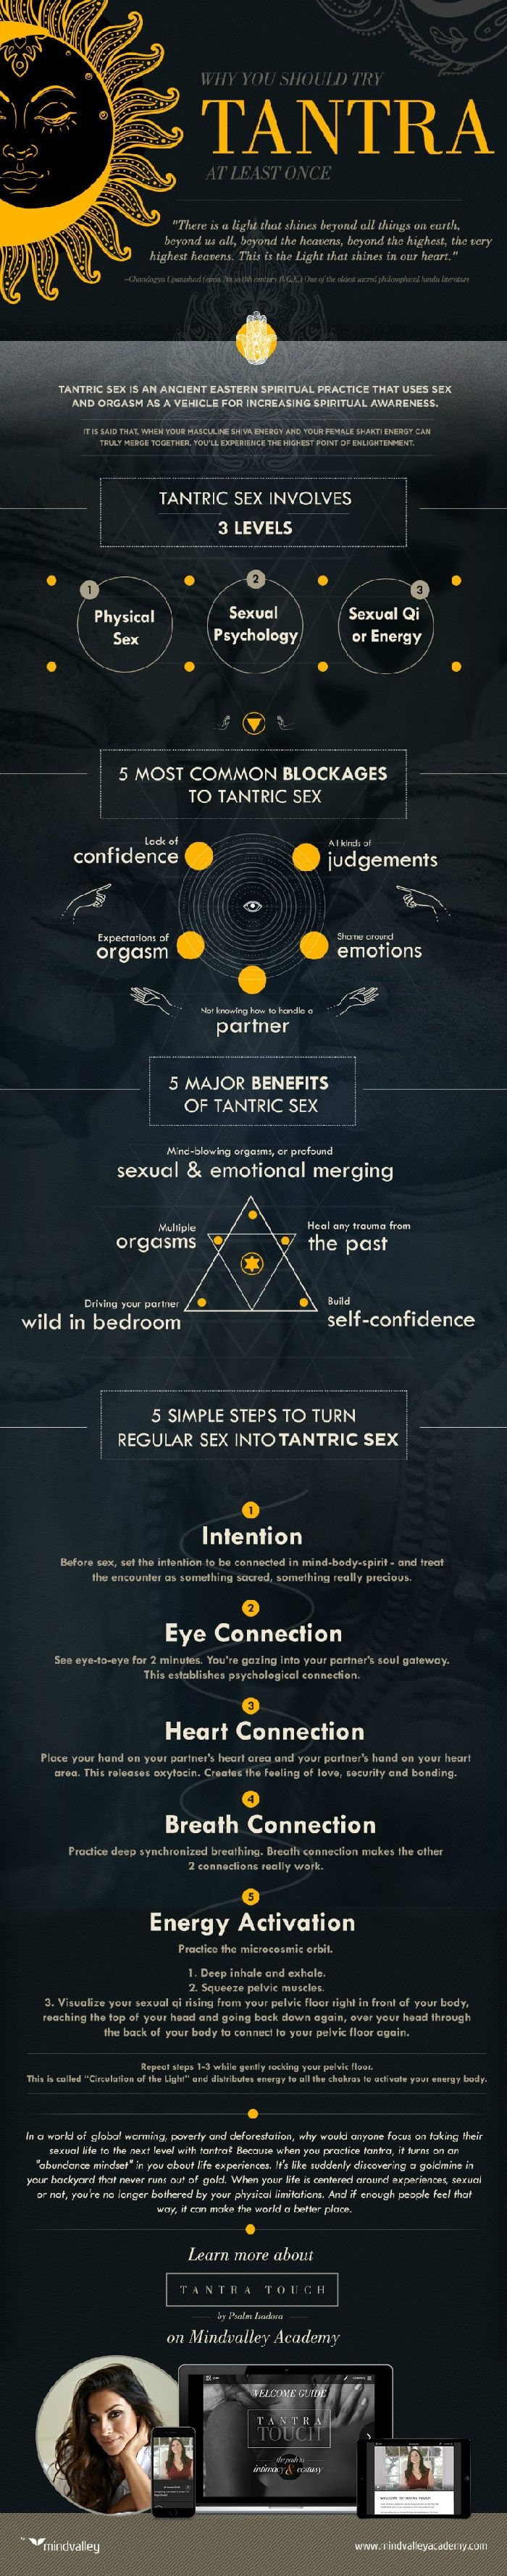 Tantra Touch by Psalm Isadora Infographic.jpg